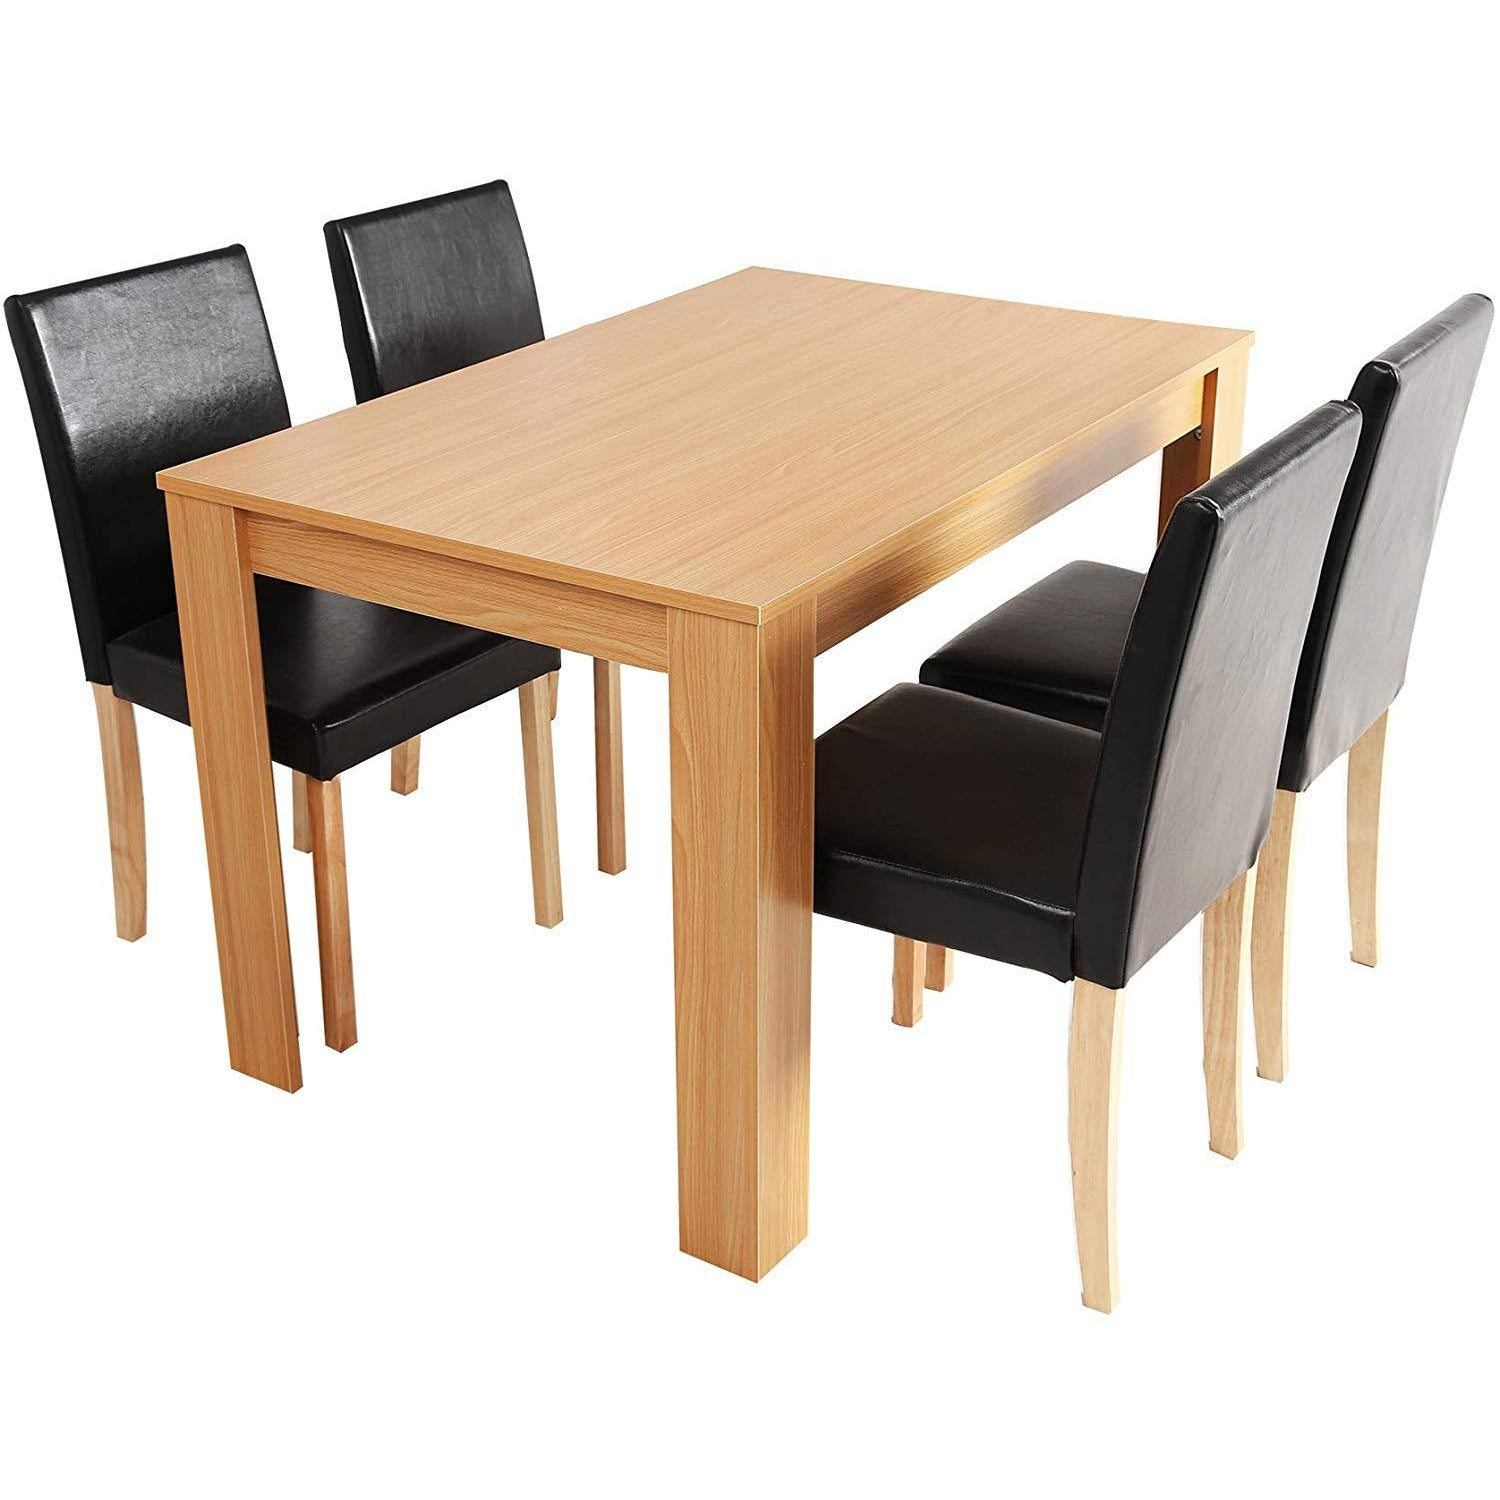 cherry tree furniture 5piece dining room set 4seater